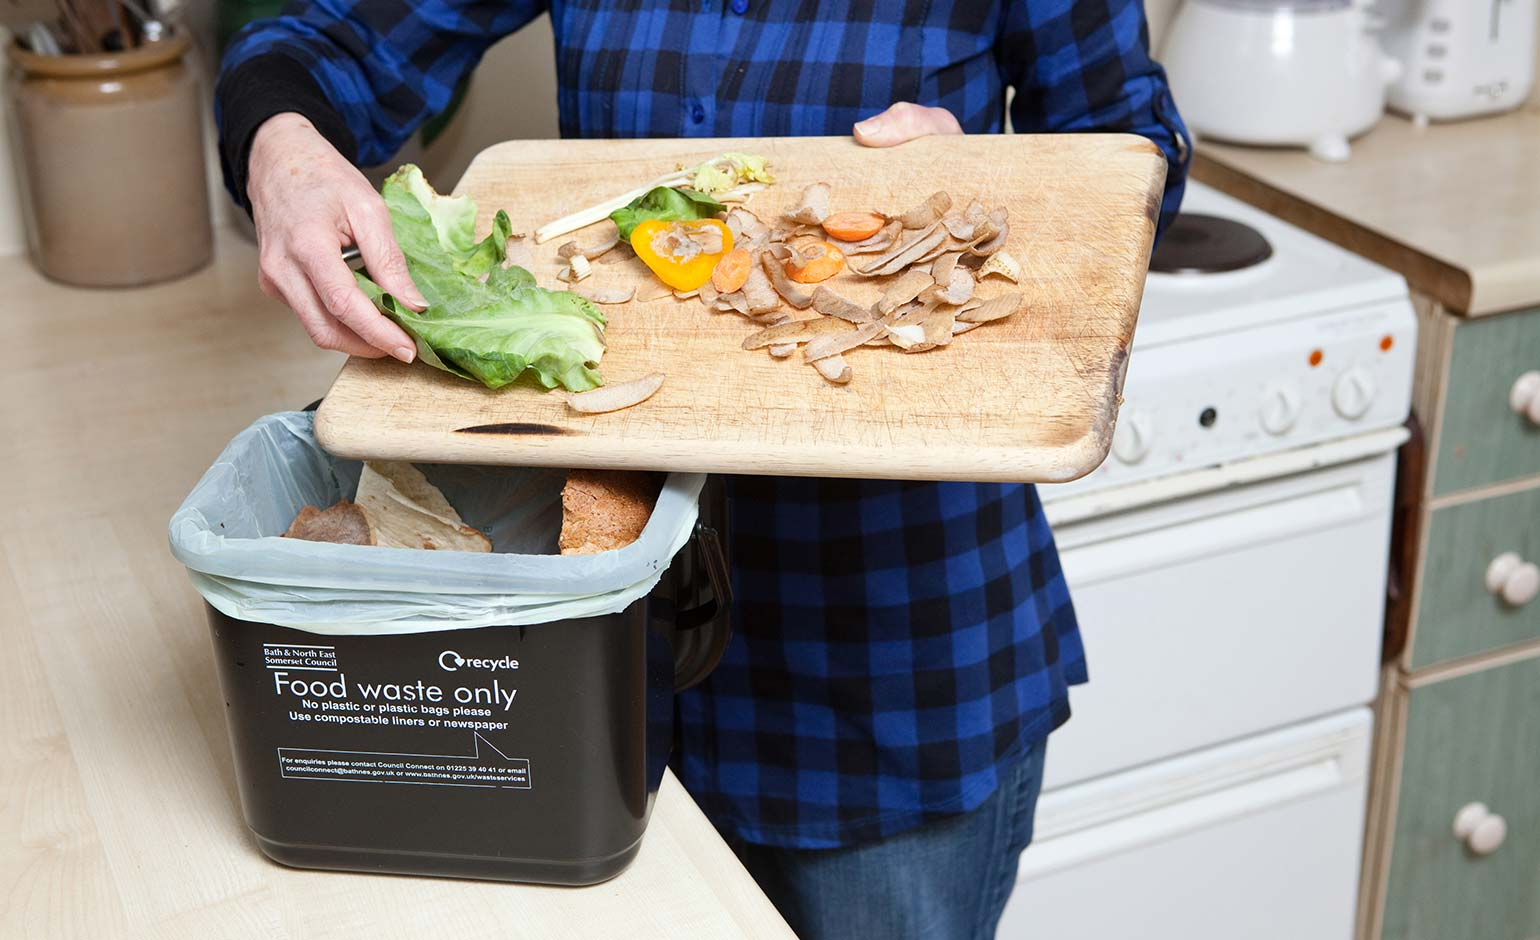 Food waste collections being expanded to encourage more recycling